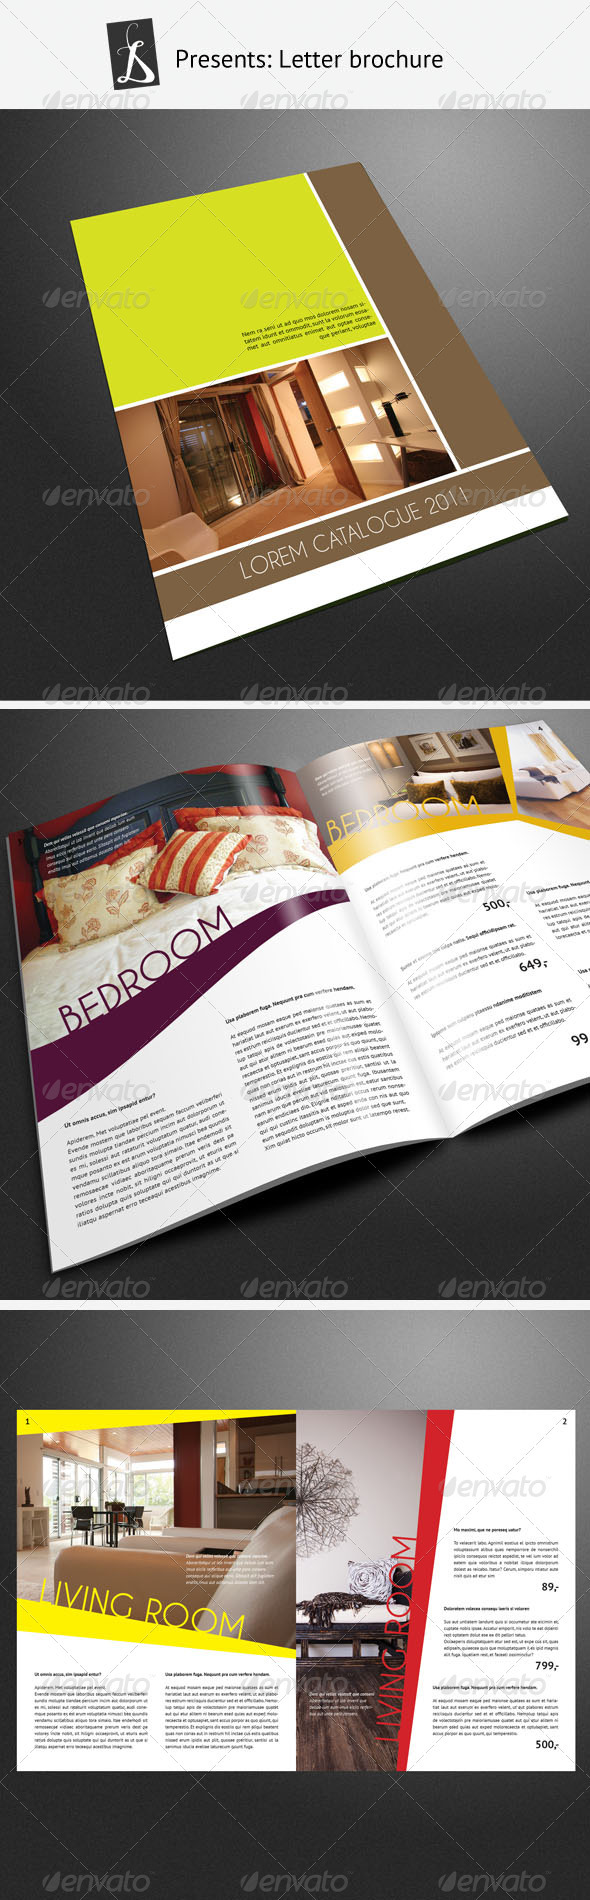 Catalogue - Catalogs Brochures